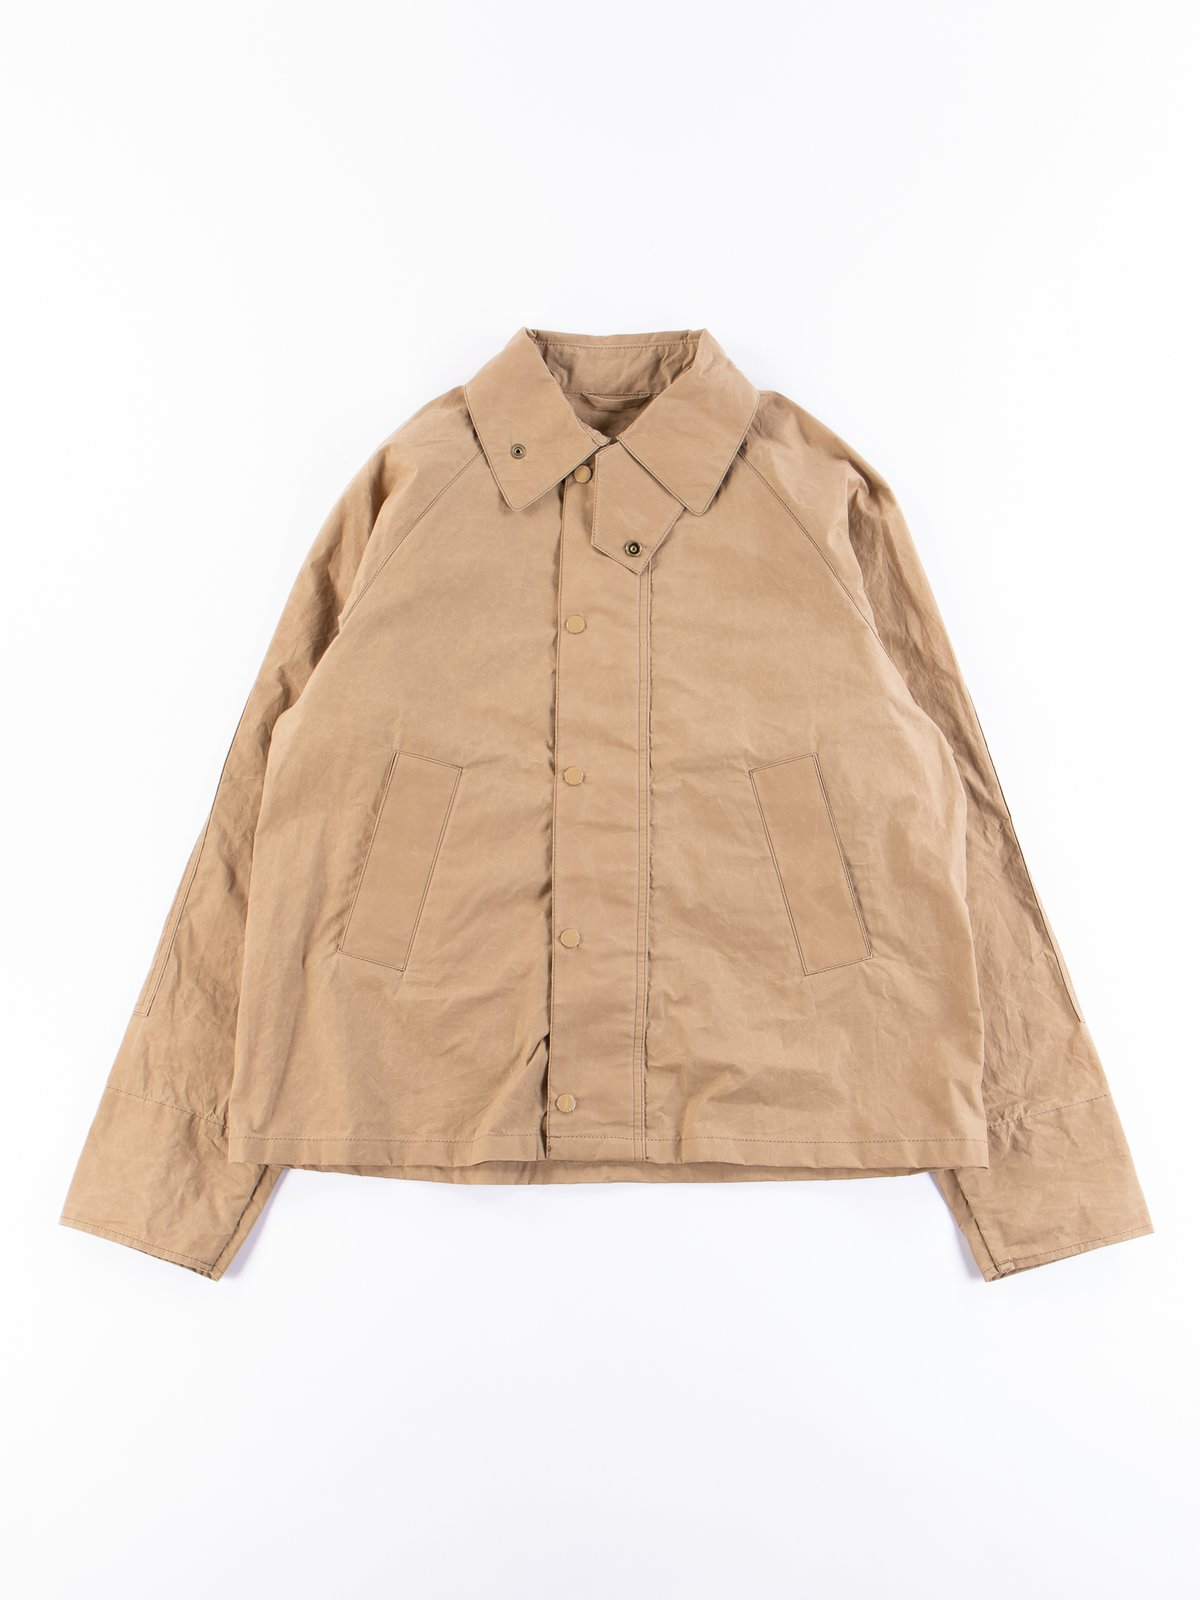 Sand Unlined Graham Jacket - Image 1